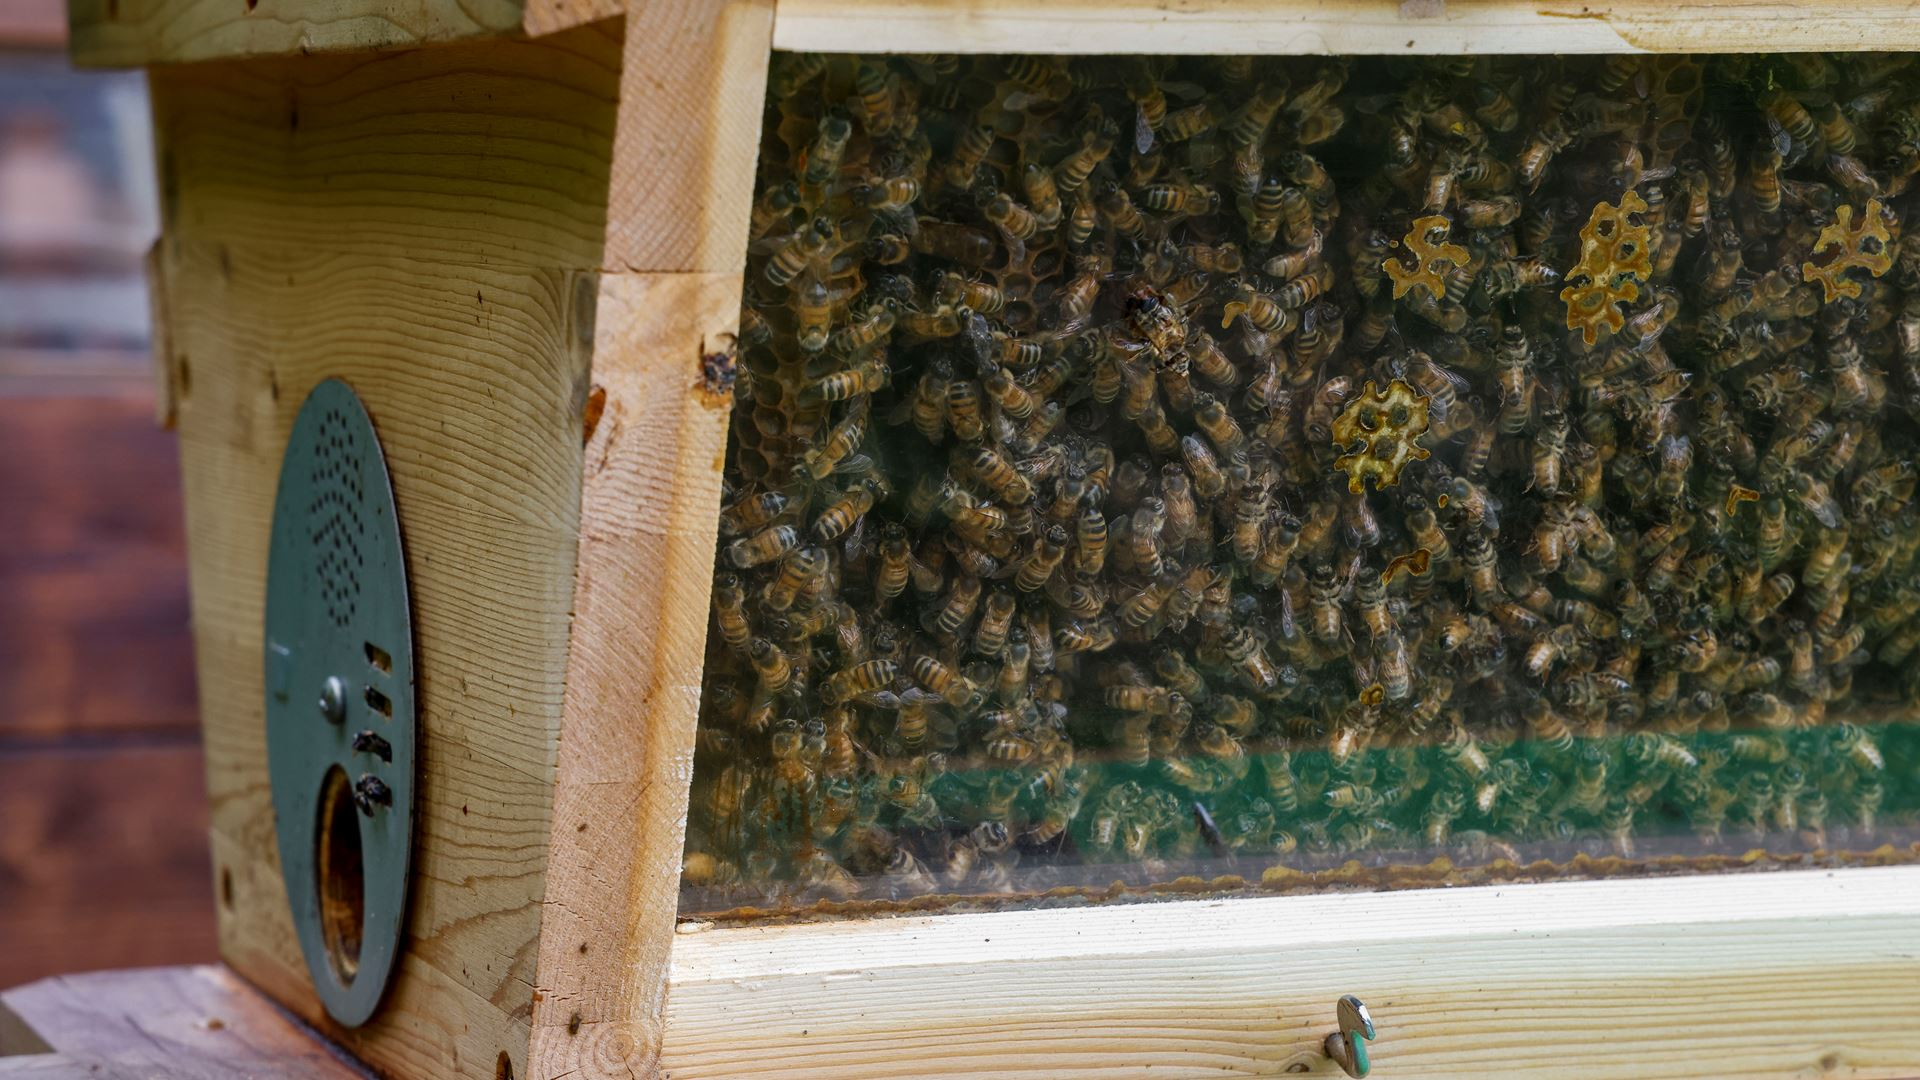 May 20, World Bee Day: Since 2016 Lamborghini has worked with bees in an environmental biomonitoring project - Image 3